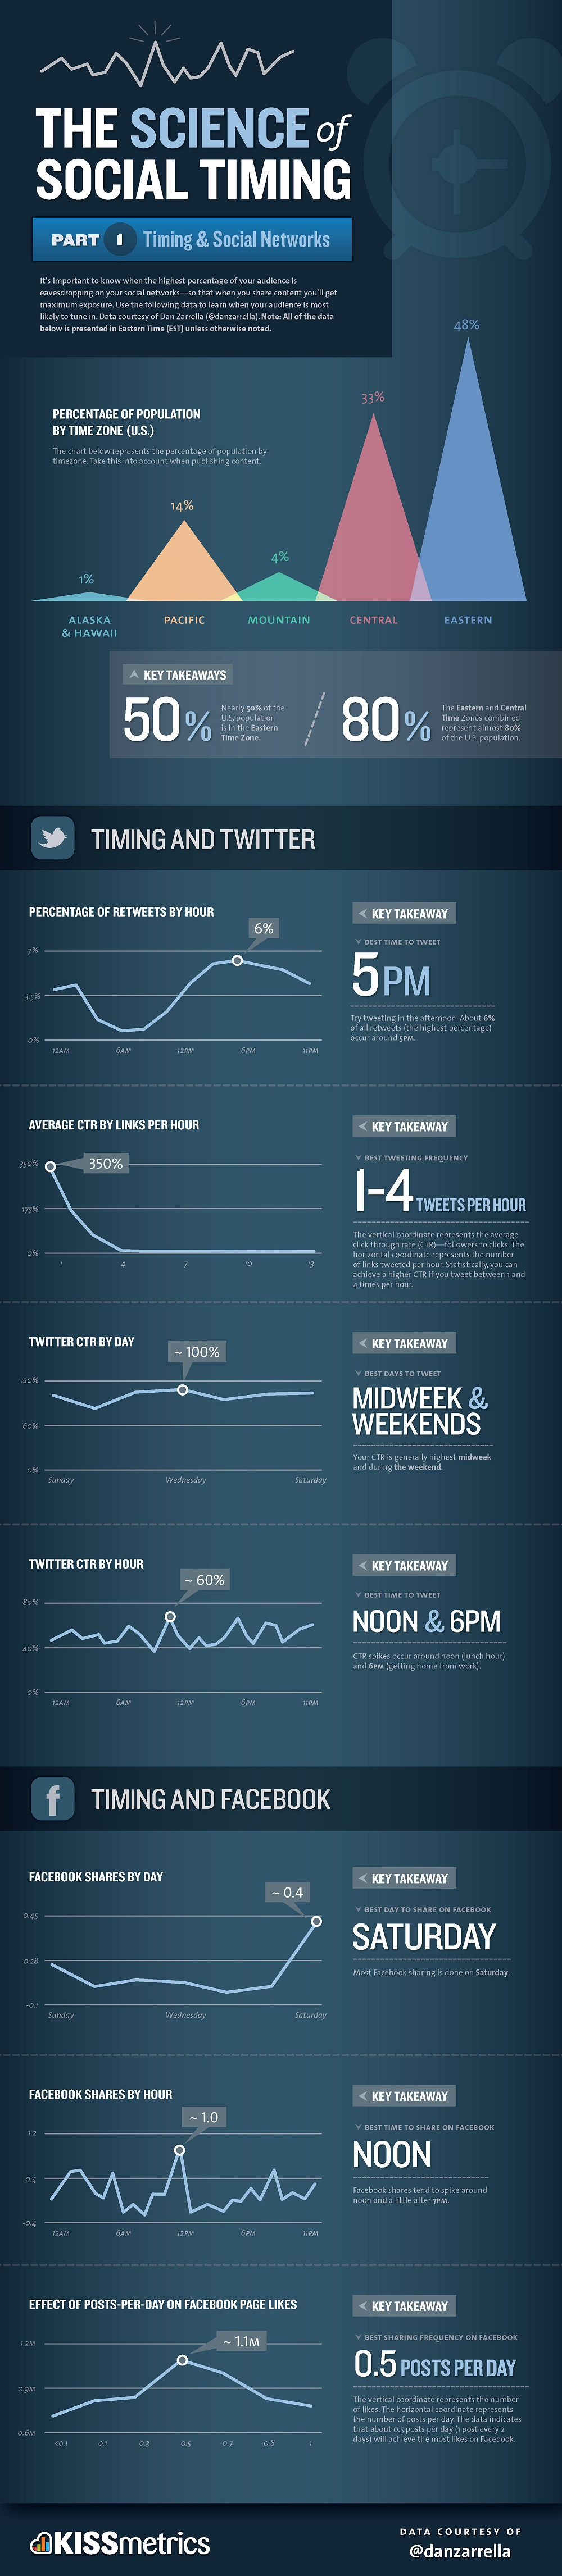 Best time to share content on social media(Click to enlarge)